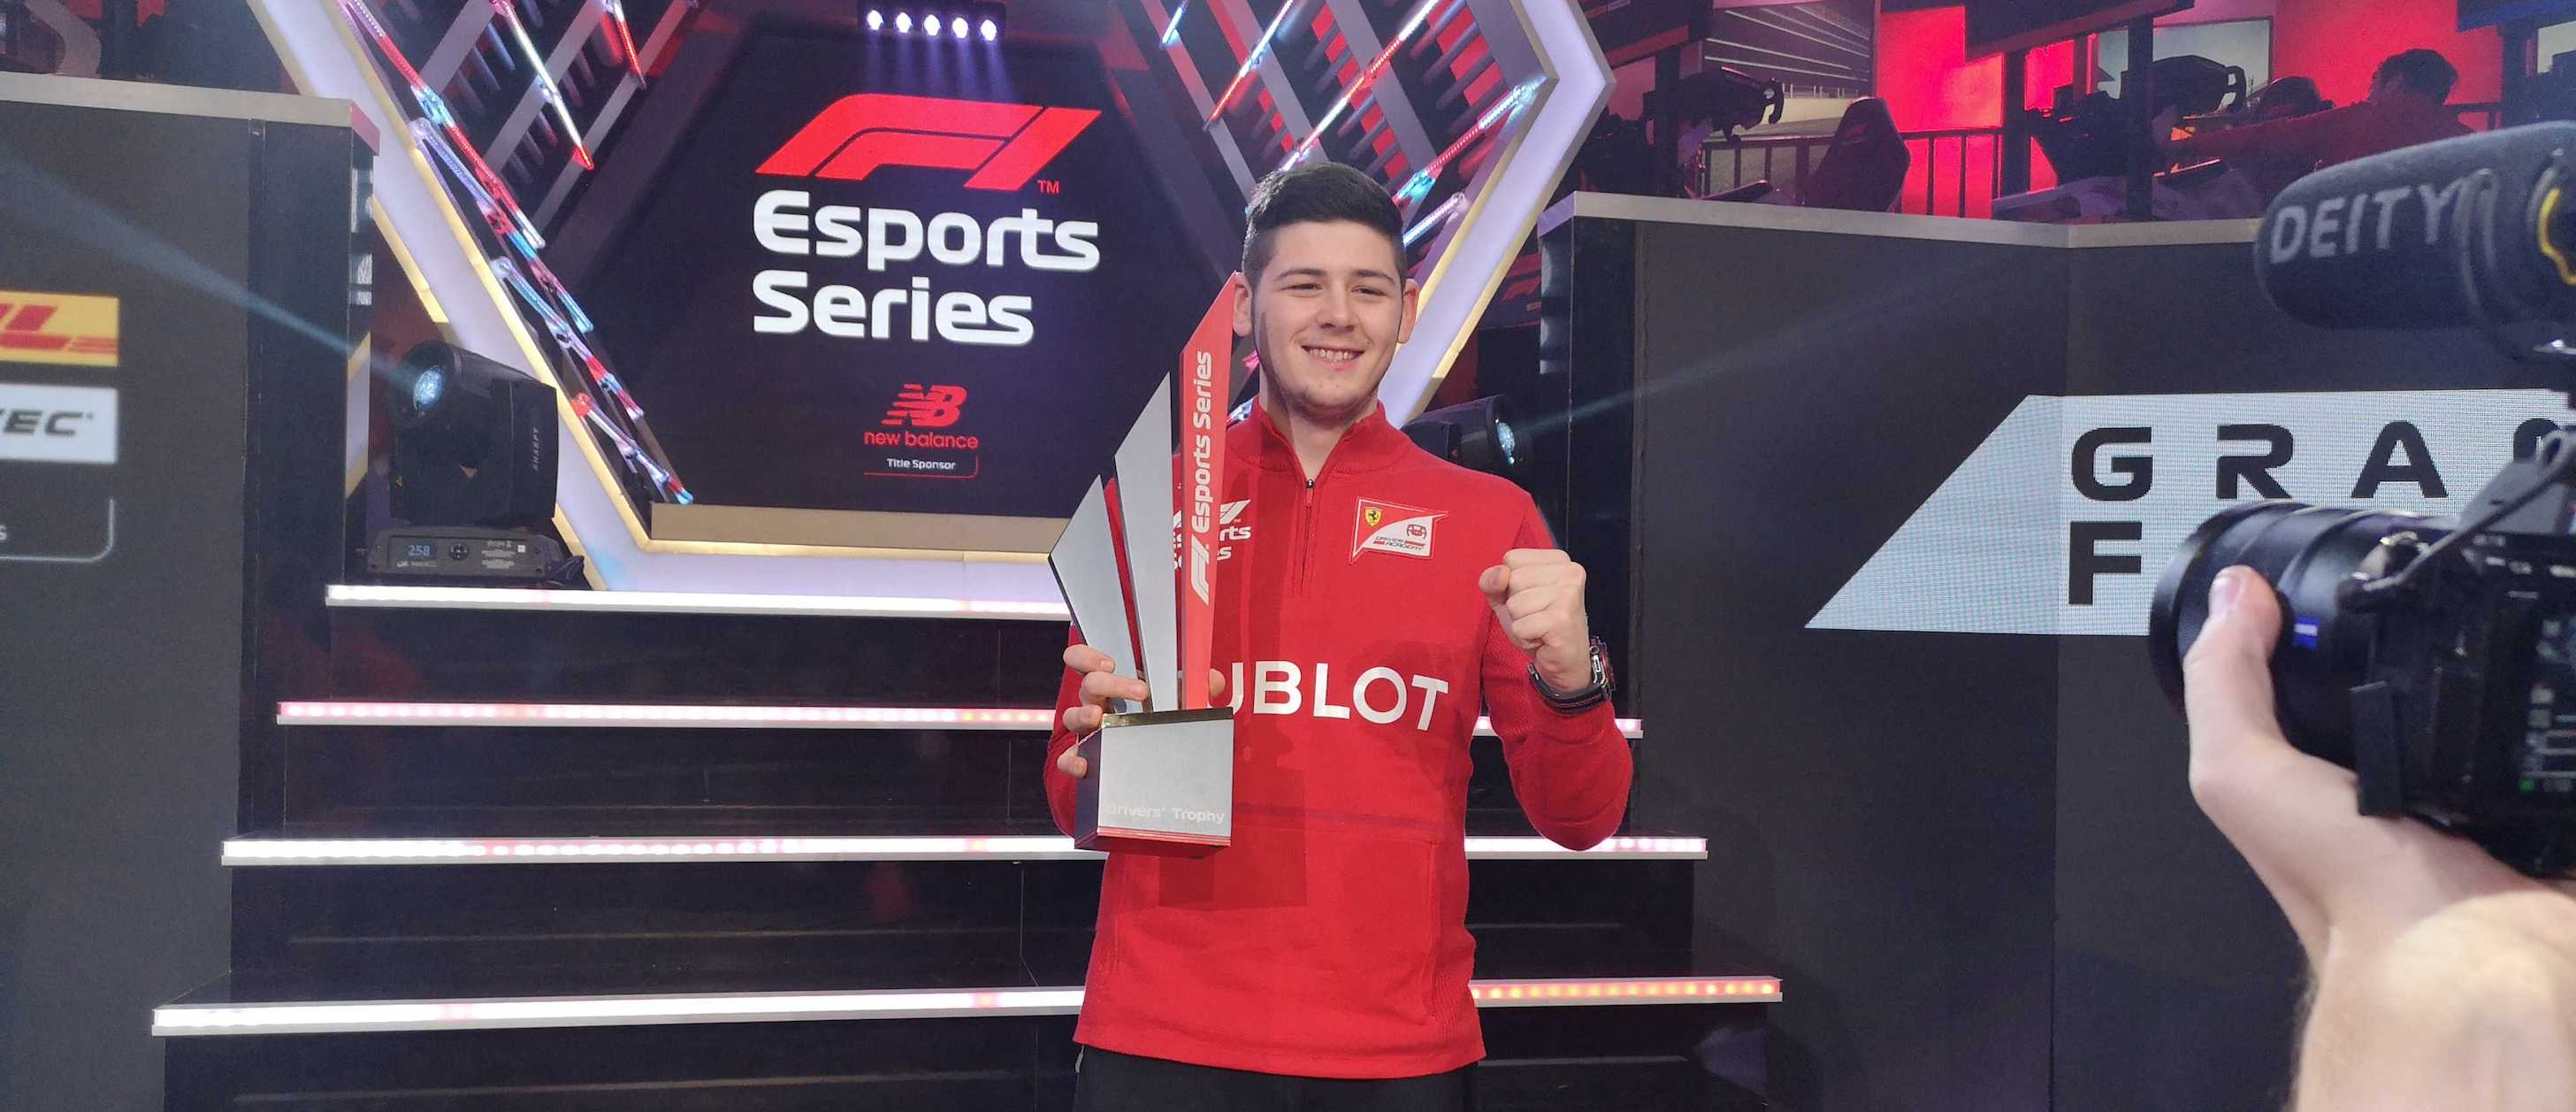 Tonizza and Red Bull Crowned Champions! 2019 F1 Esports Grand Final Report